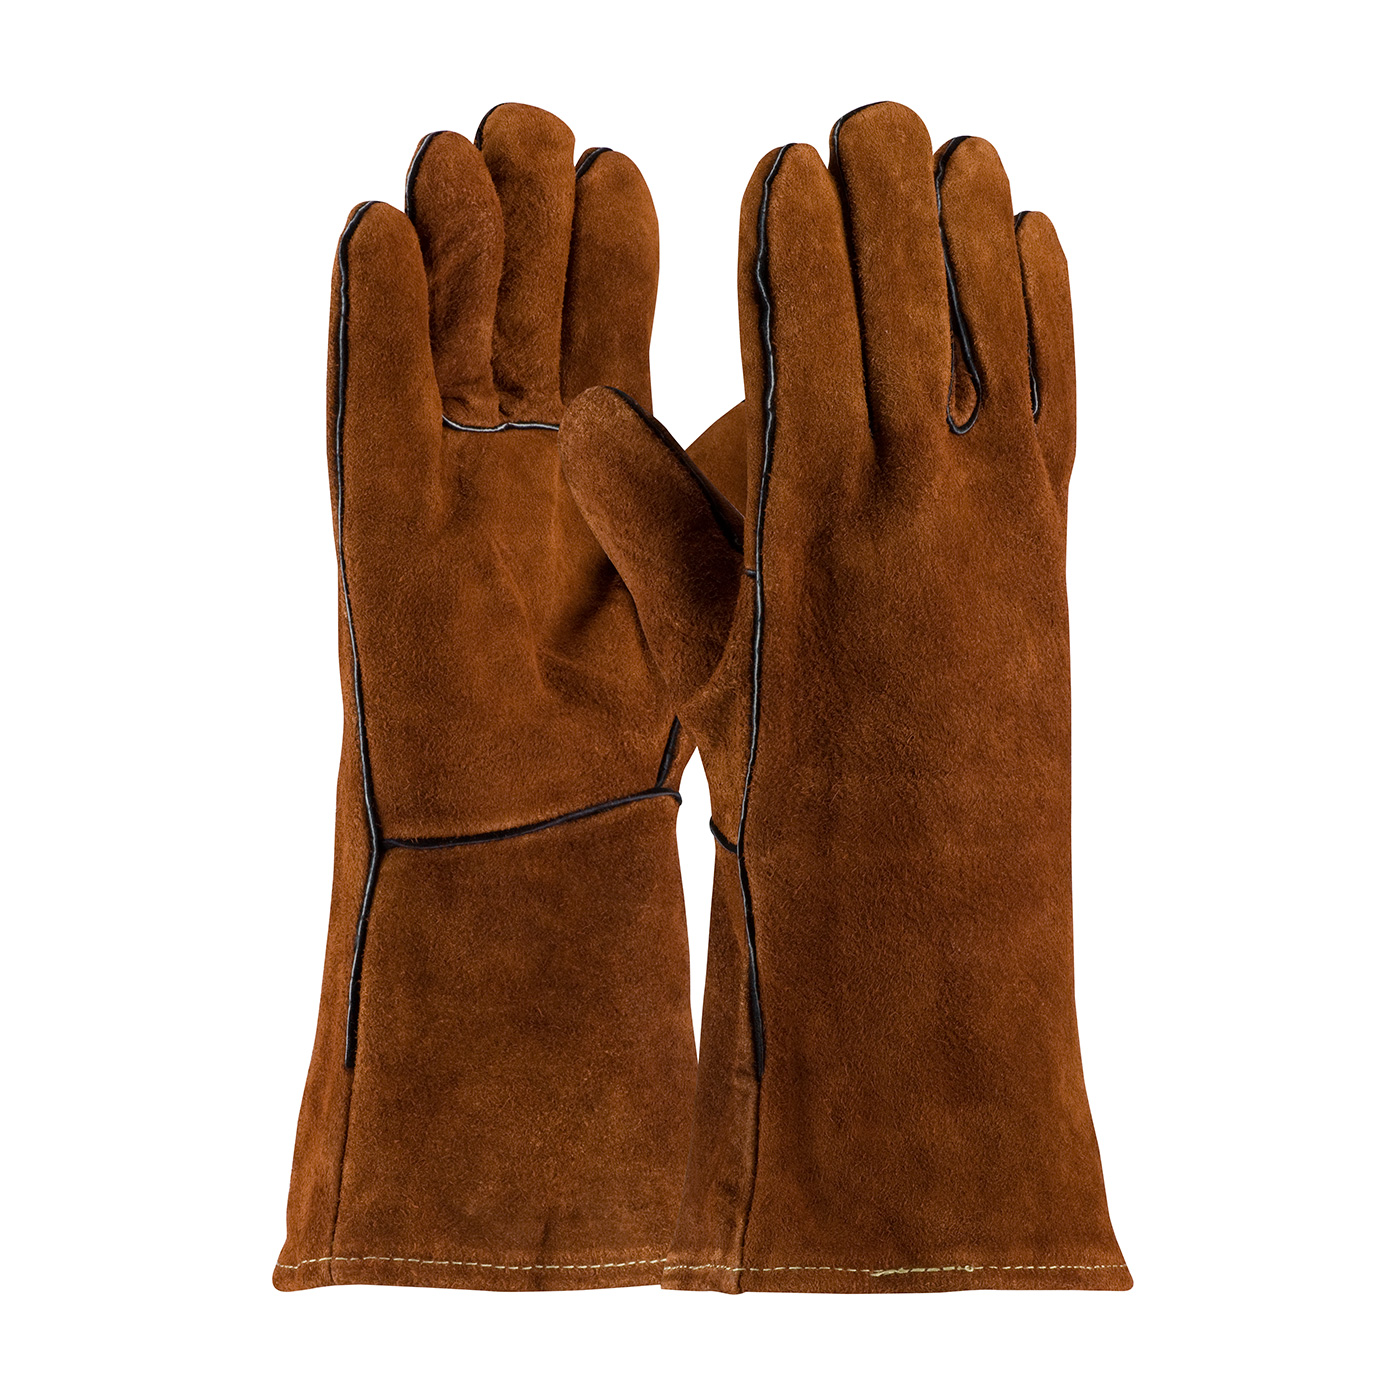 #73-7088 PIP® Shoulder Split Cowhide Leather Welder's Glove with Cotton Liner